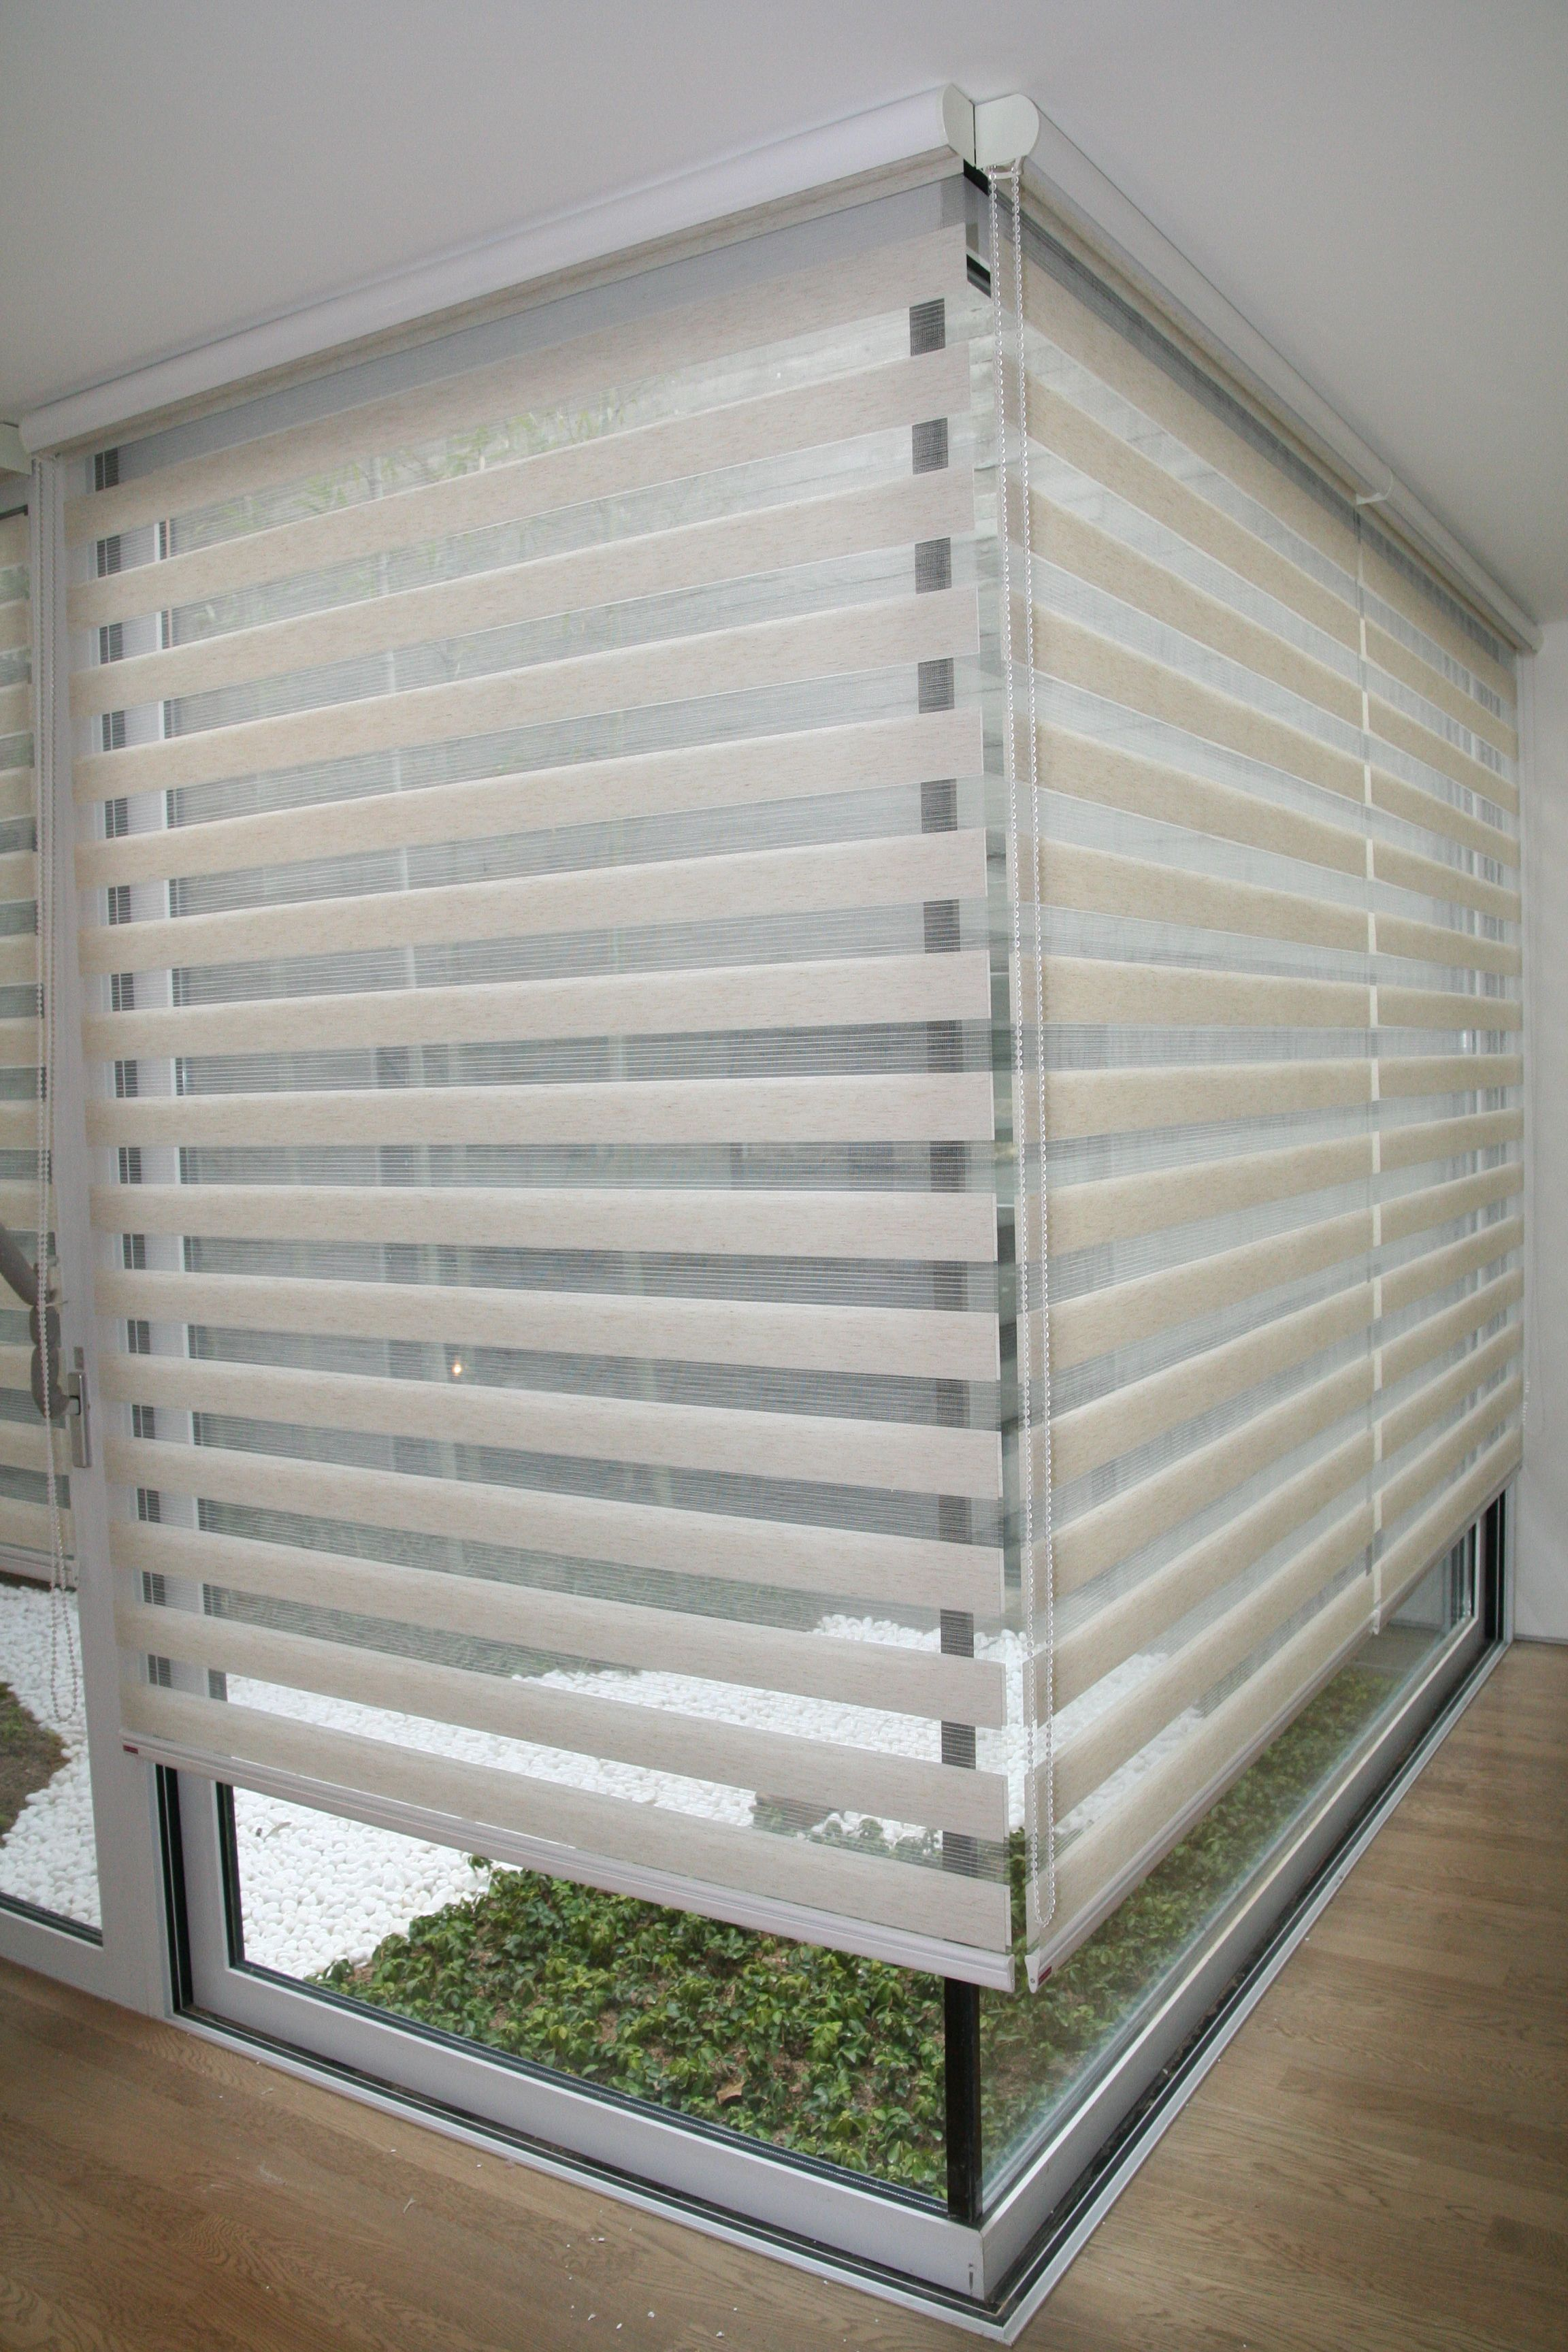 magic bathroom pin with wooden venetian blind pelmet pinterest blinds a